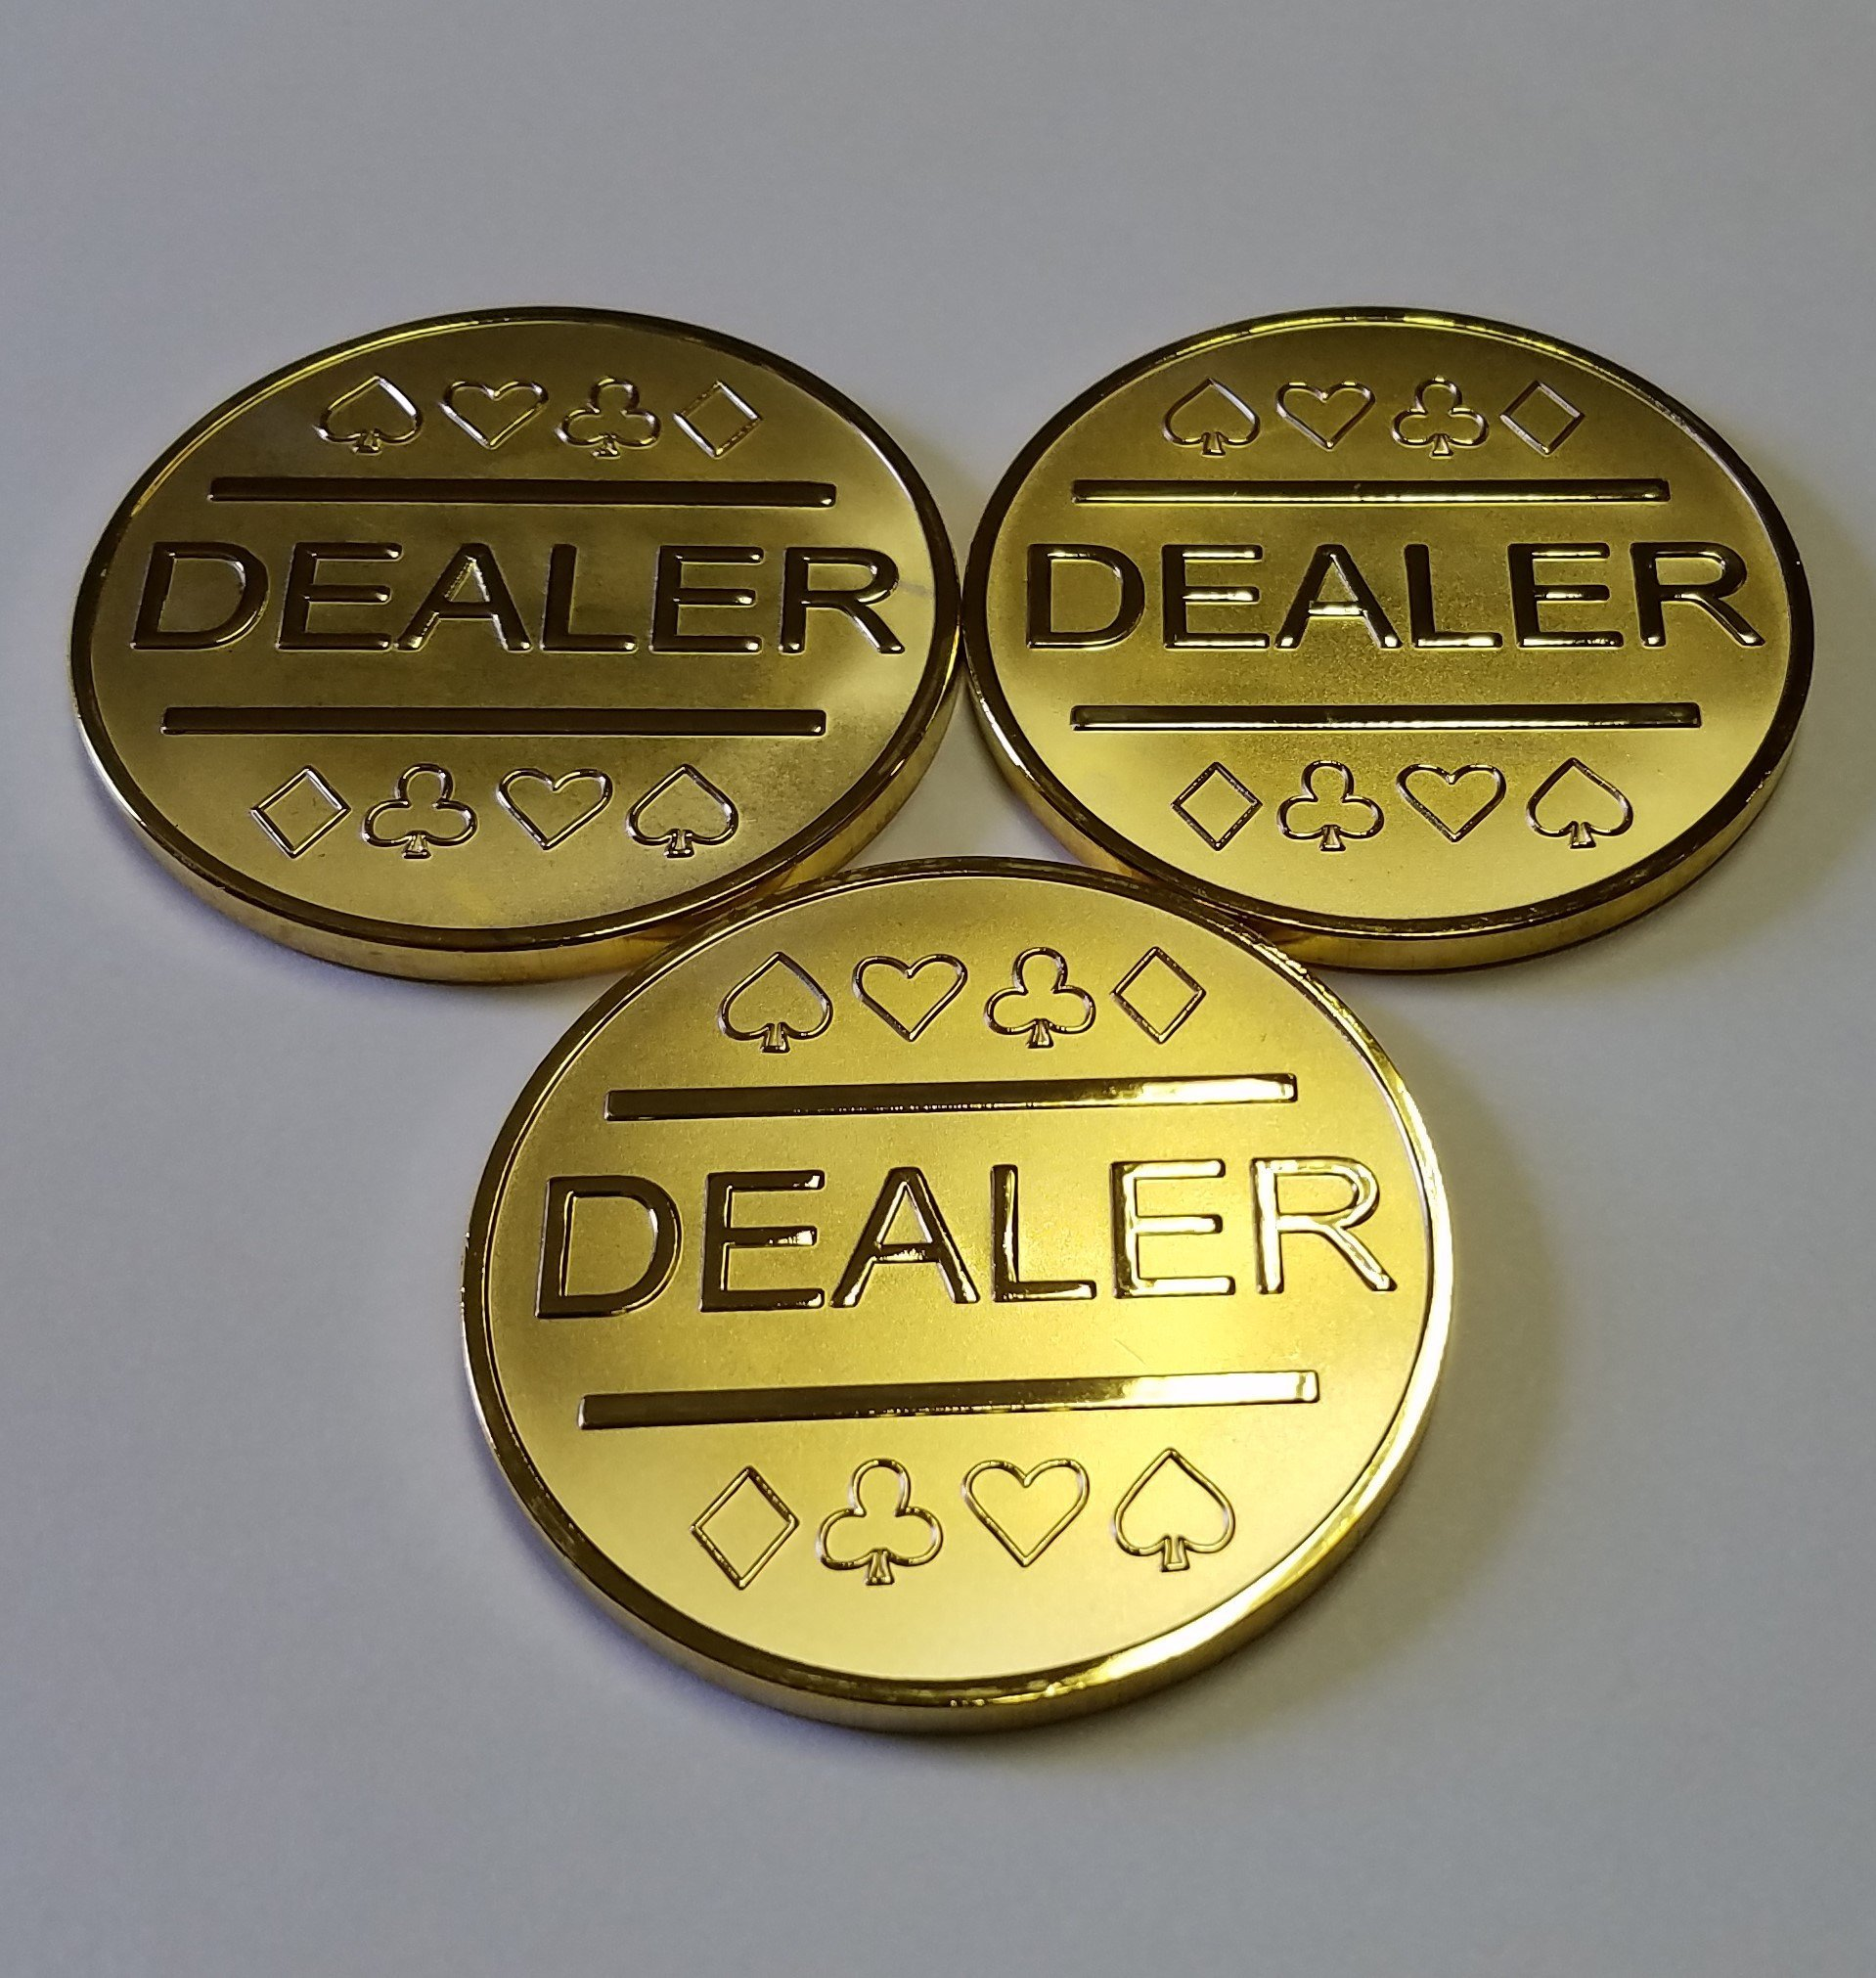 3X Gold Plated Metal Dealer Buttons Poker Games Such as Texas Hold'em